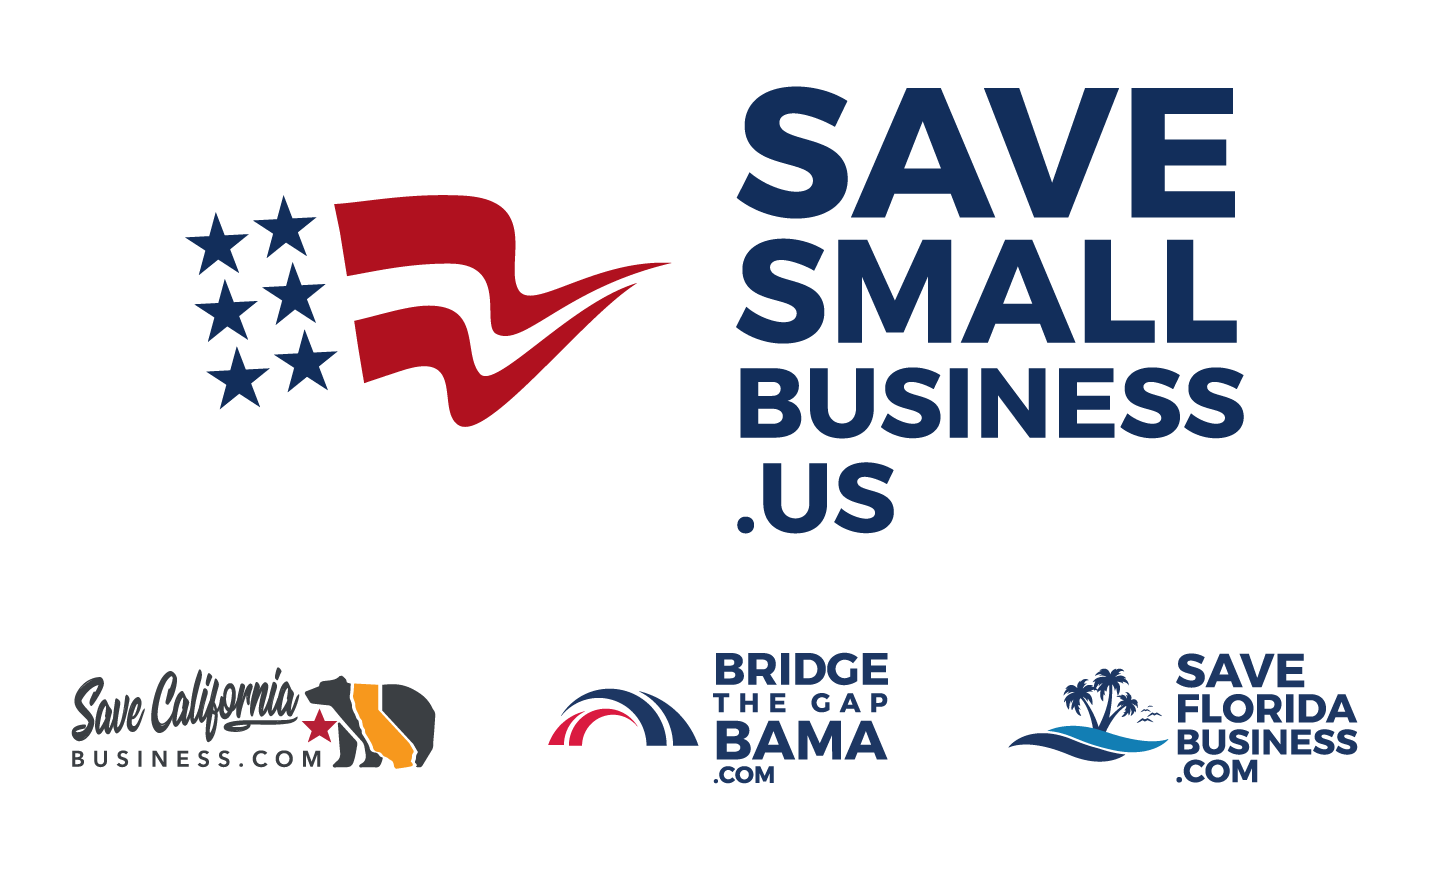 Save Small Business Logo